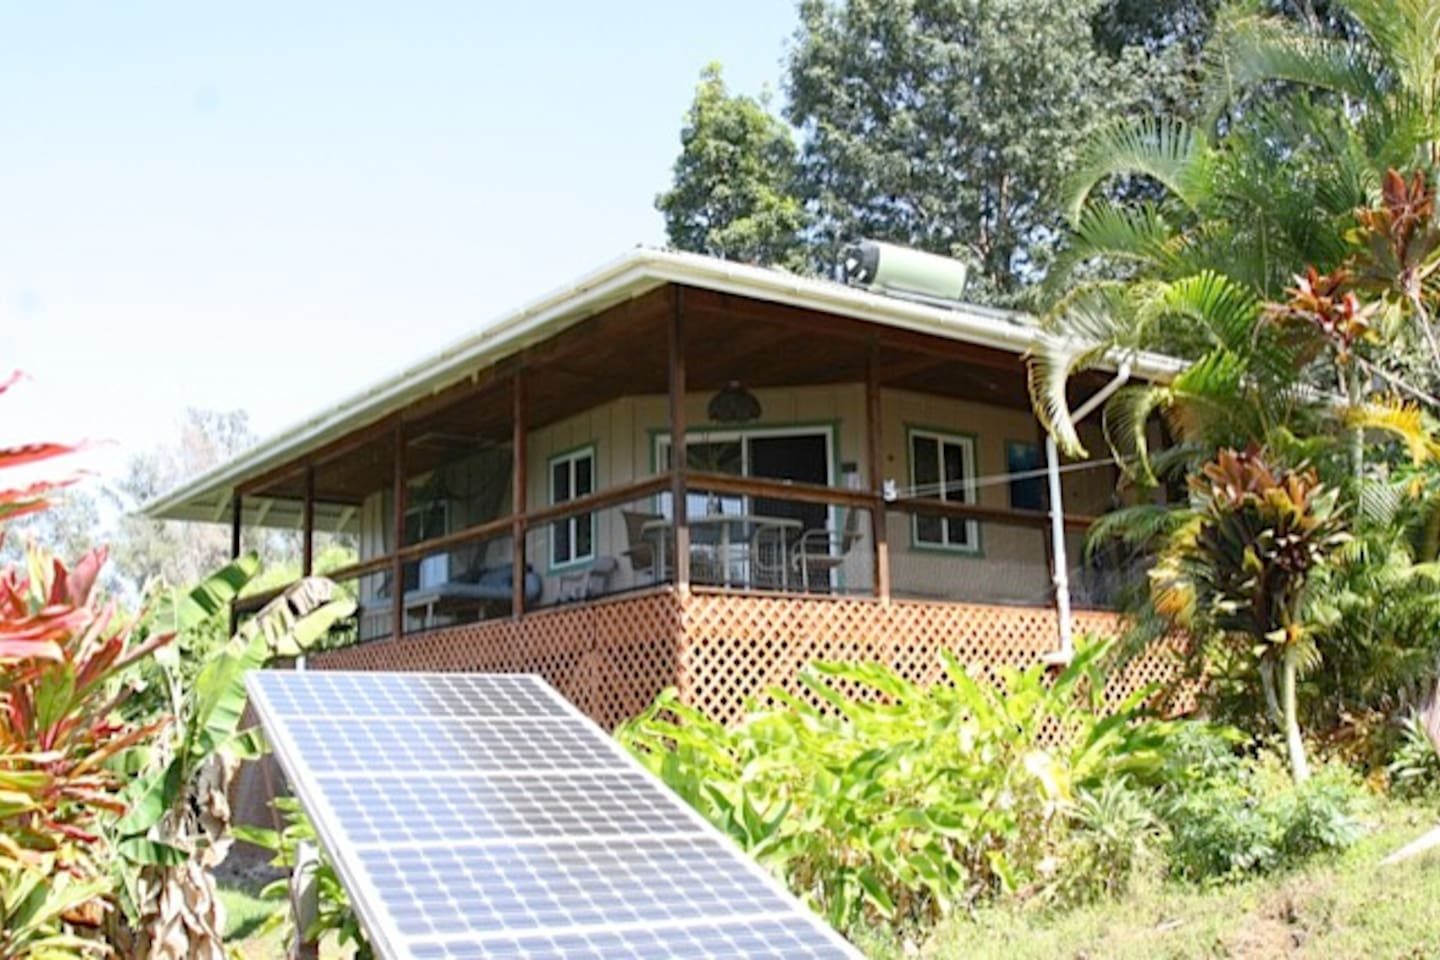 Your private farm cottage. 100% solar. Your stay will be Green.